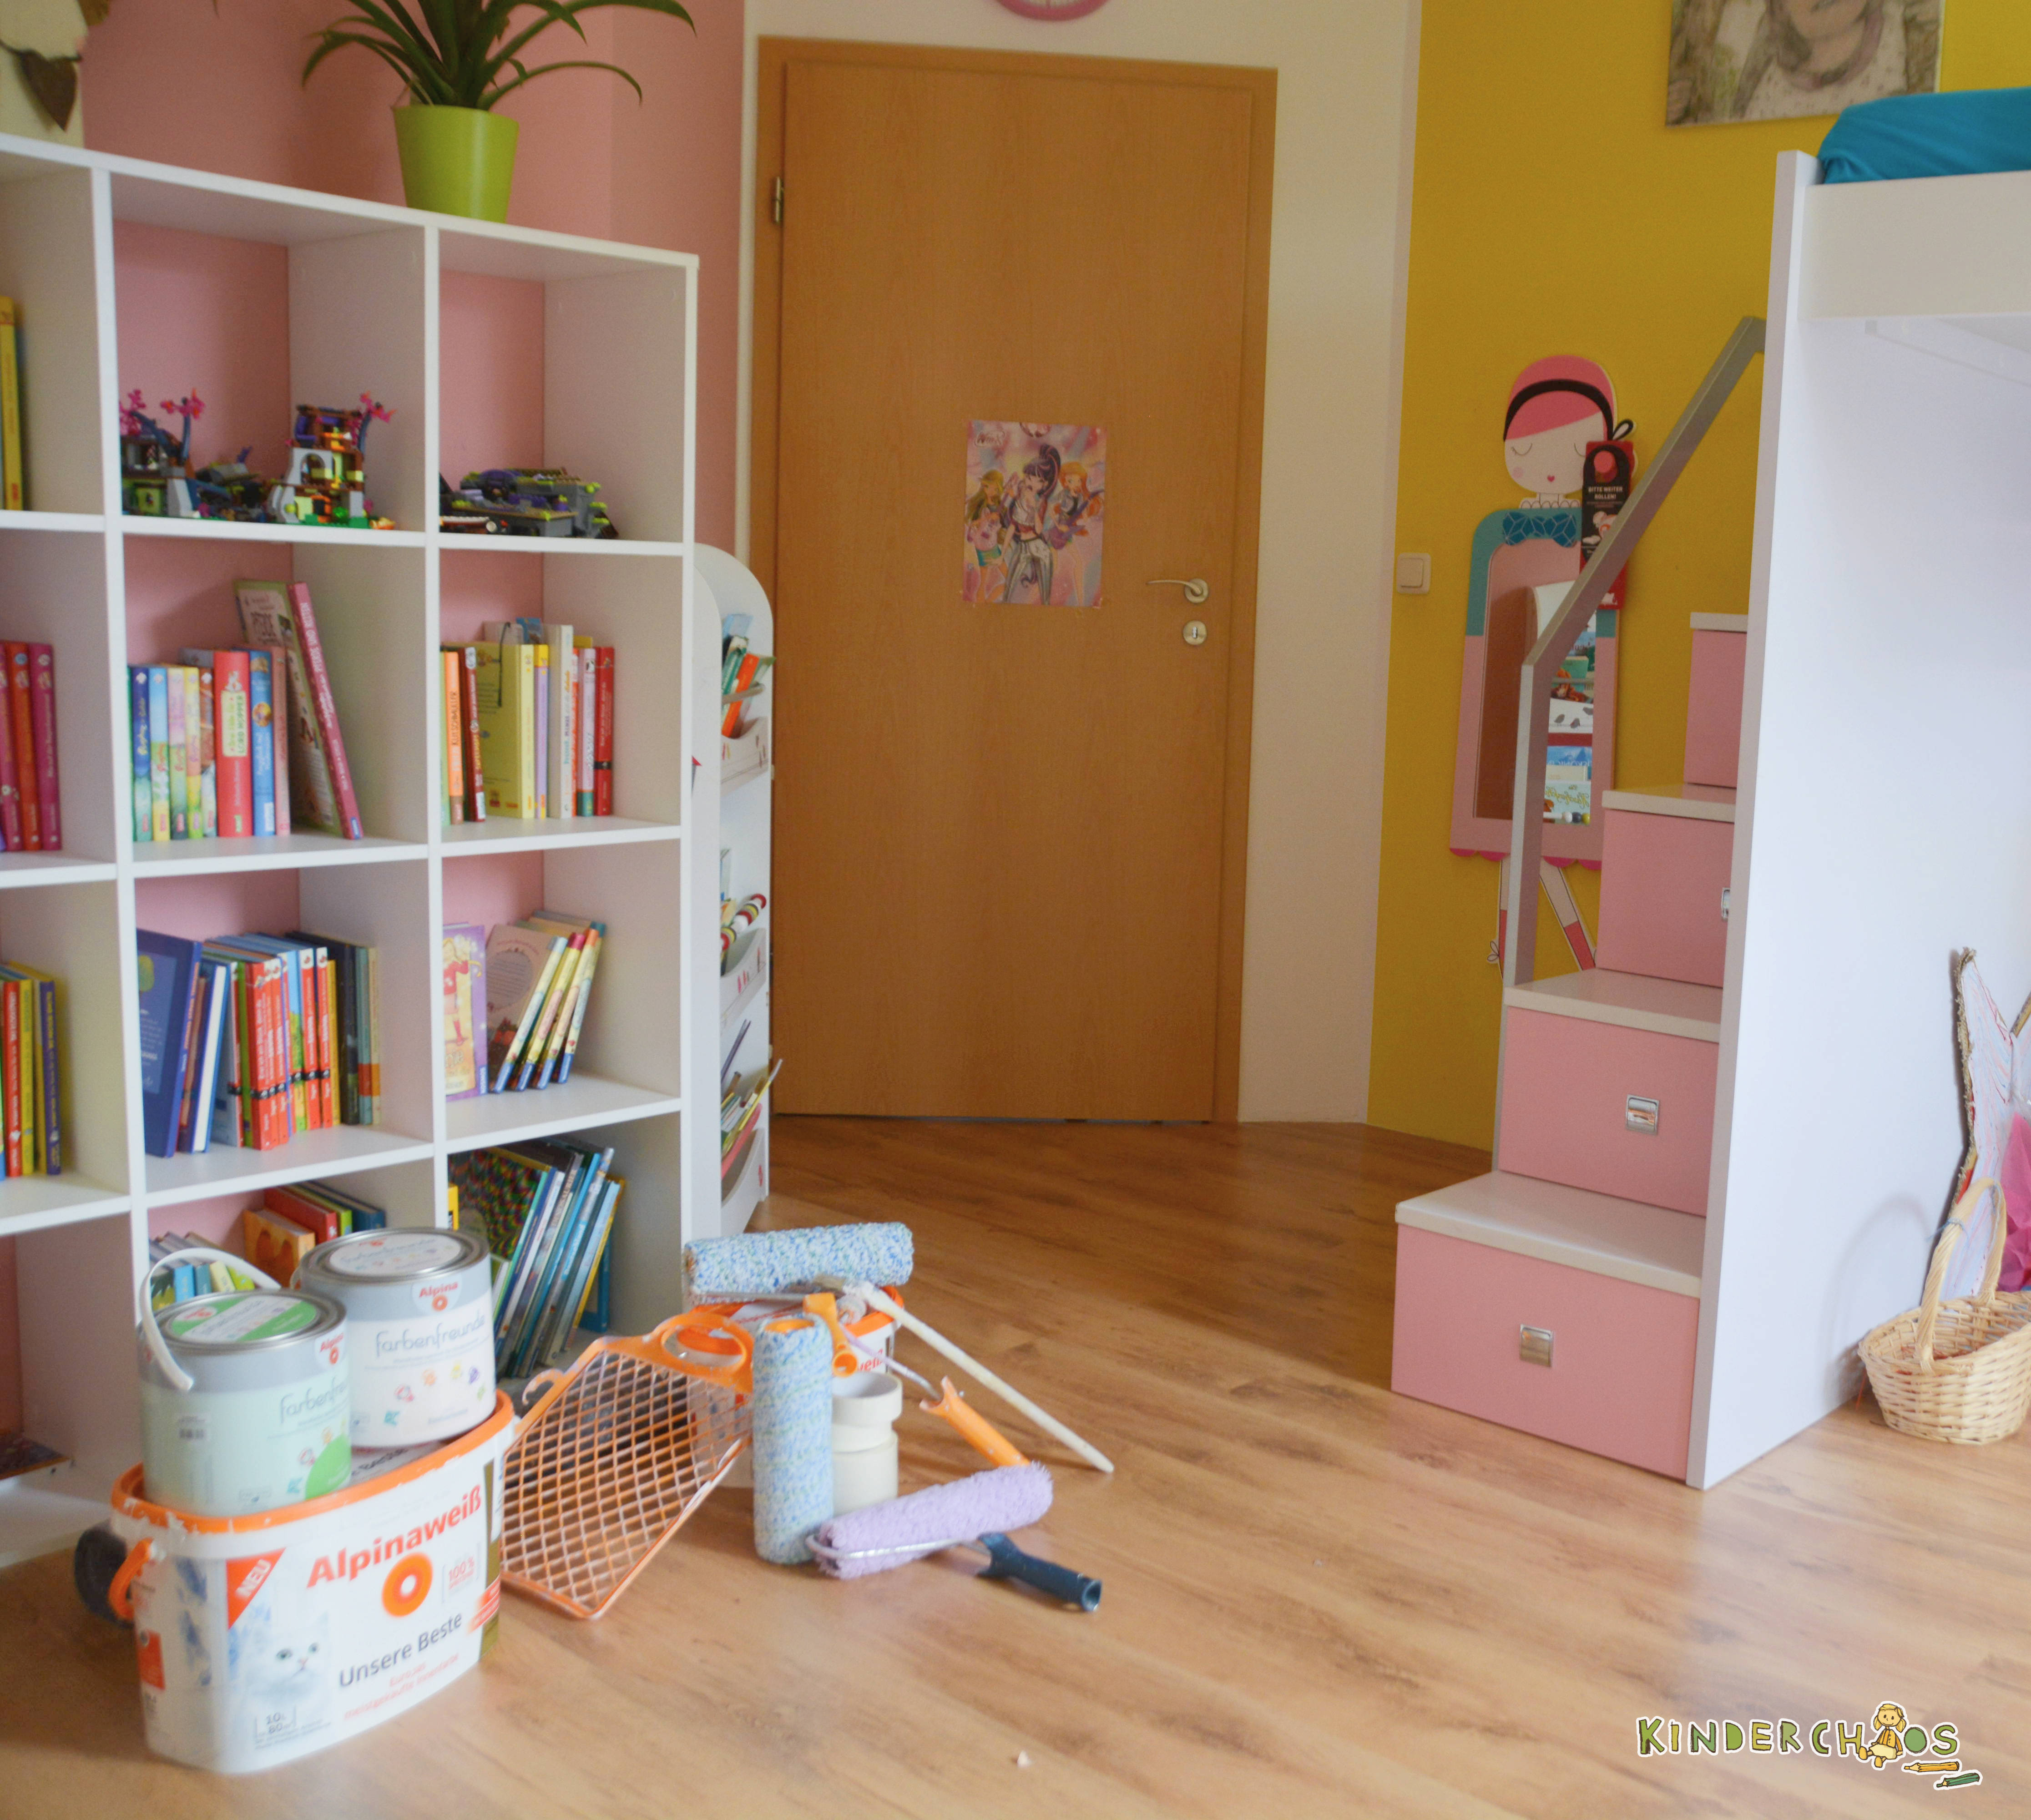 kinderzimmer neu streichen kinderchaos familienblog. Black Bedroom Furniture Sets. Home Design Ideas